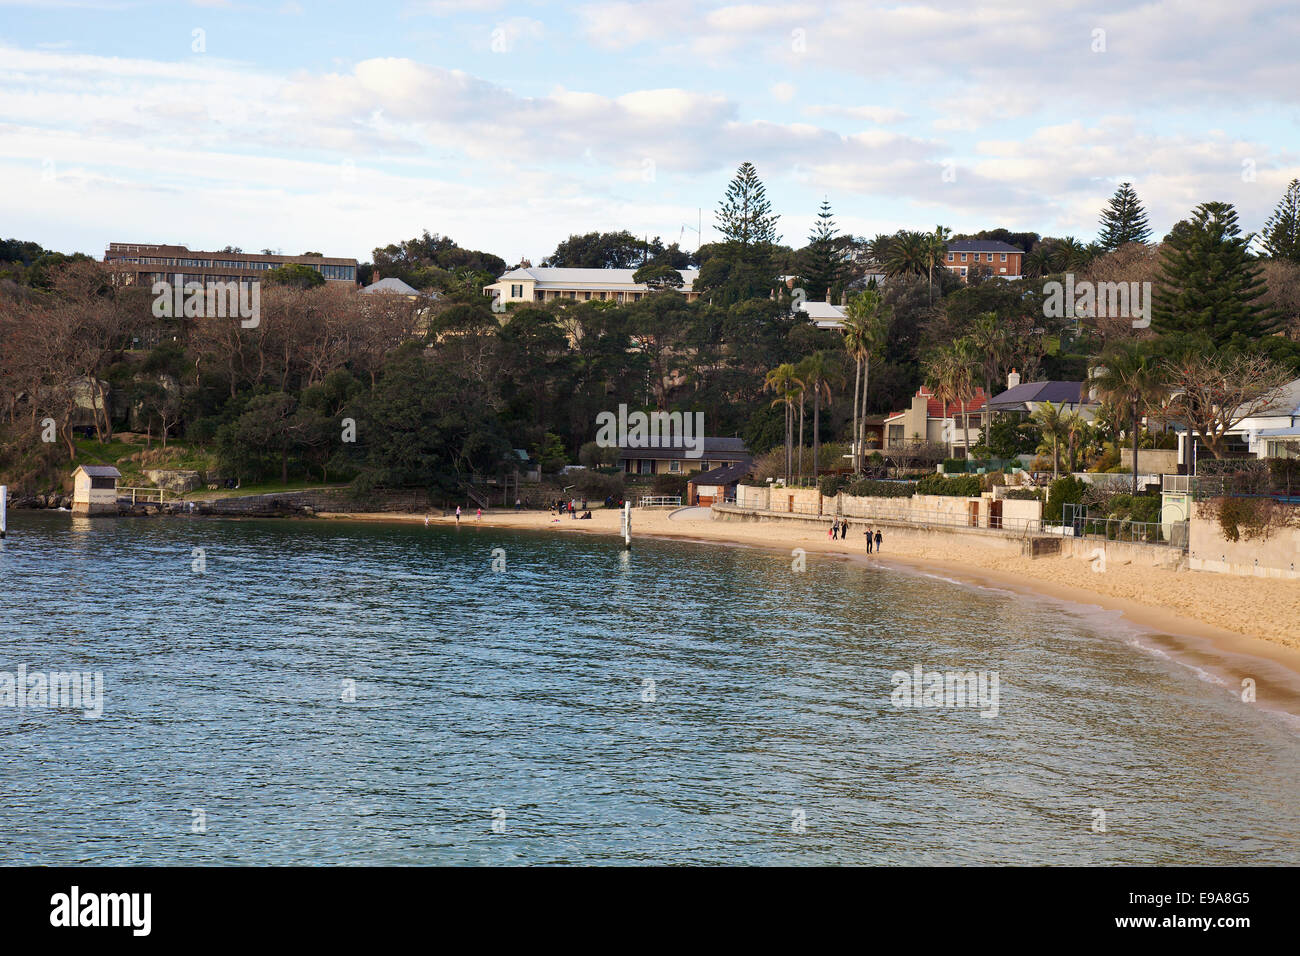 A view of Camp Cove Harbour Beach,  Watsons Bay, Sydney. - Stock Image